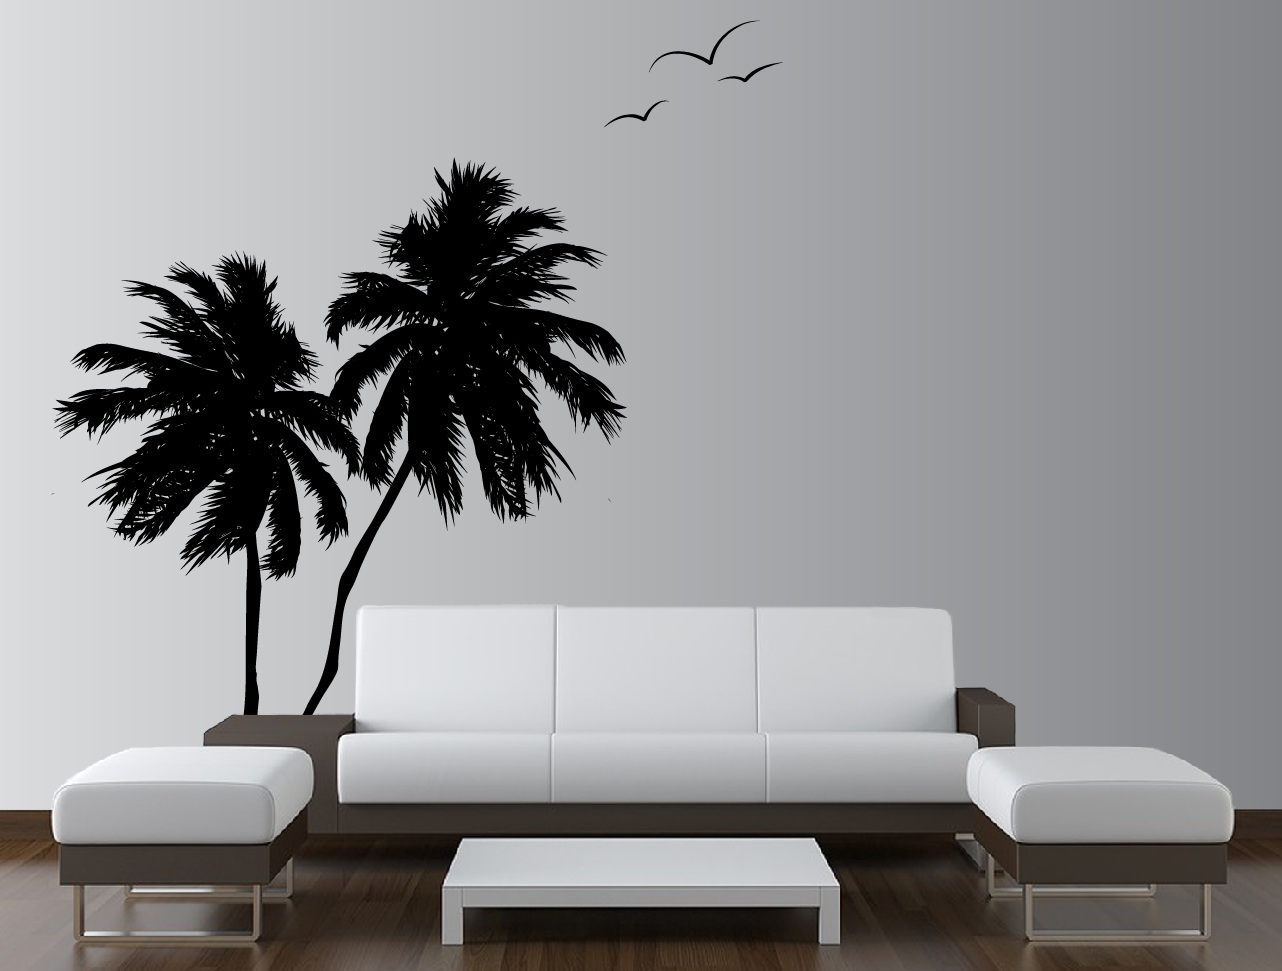 palm-trees-vinyl-decal-1133.jpg